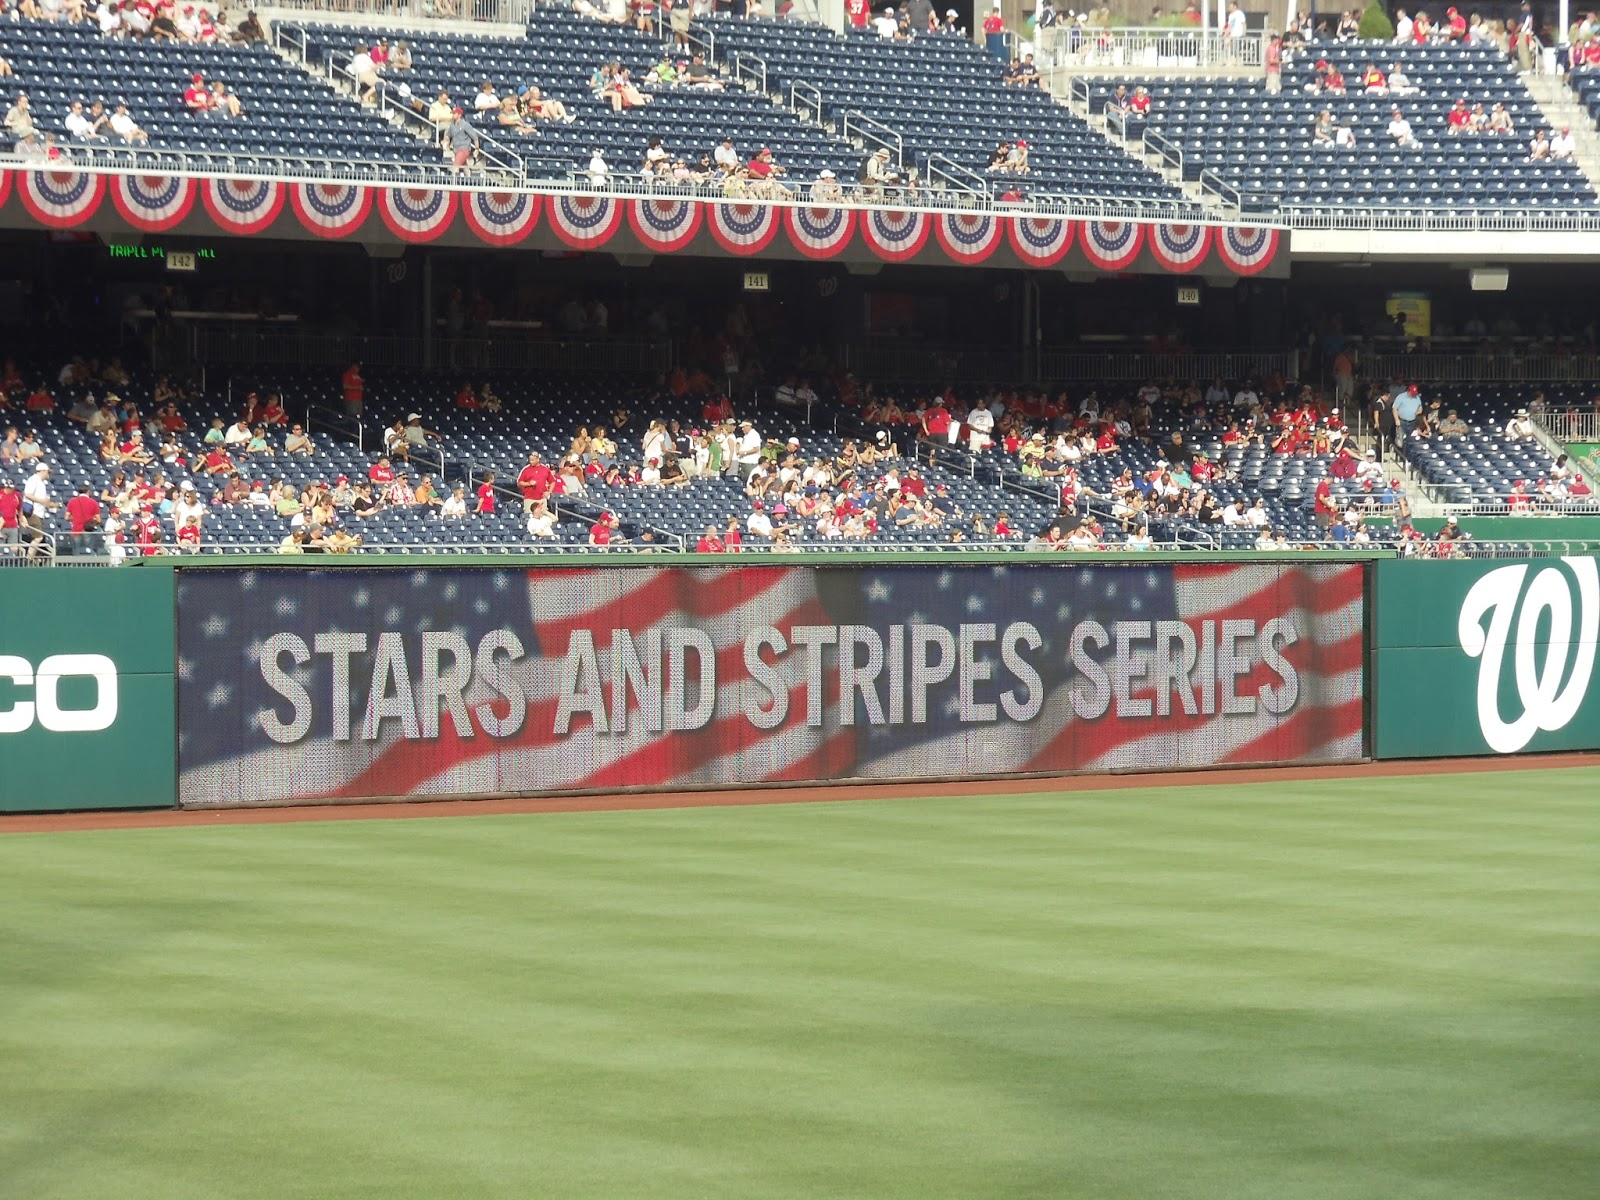 Nationals Park Stars and Stripes Series